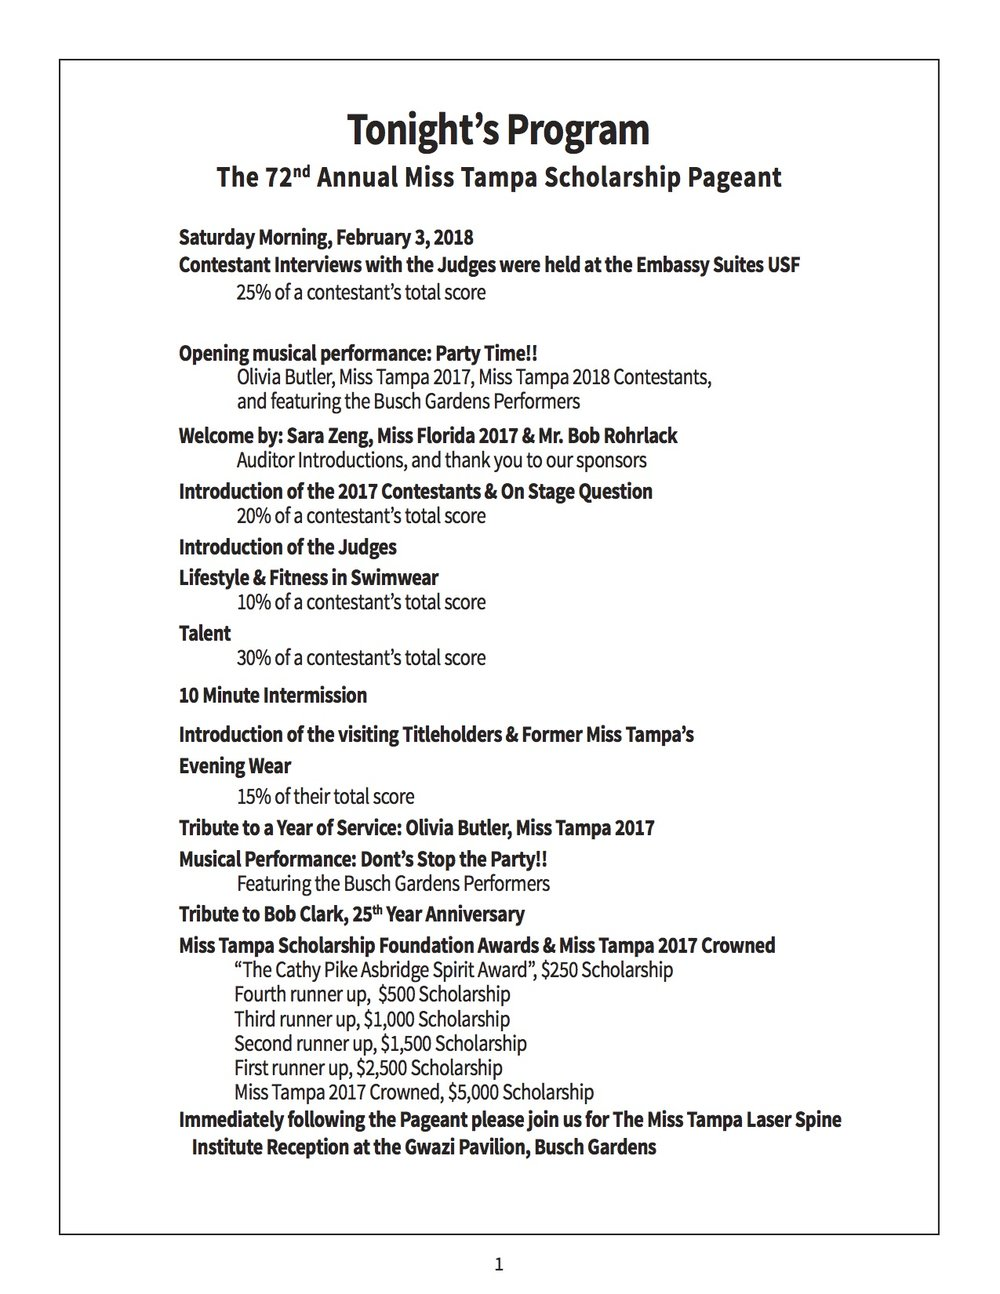 Miss Tampa 2018 program final 1.30.18.jpg